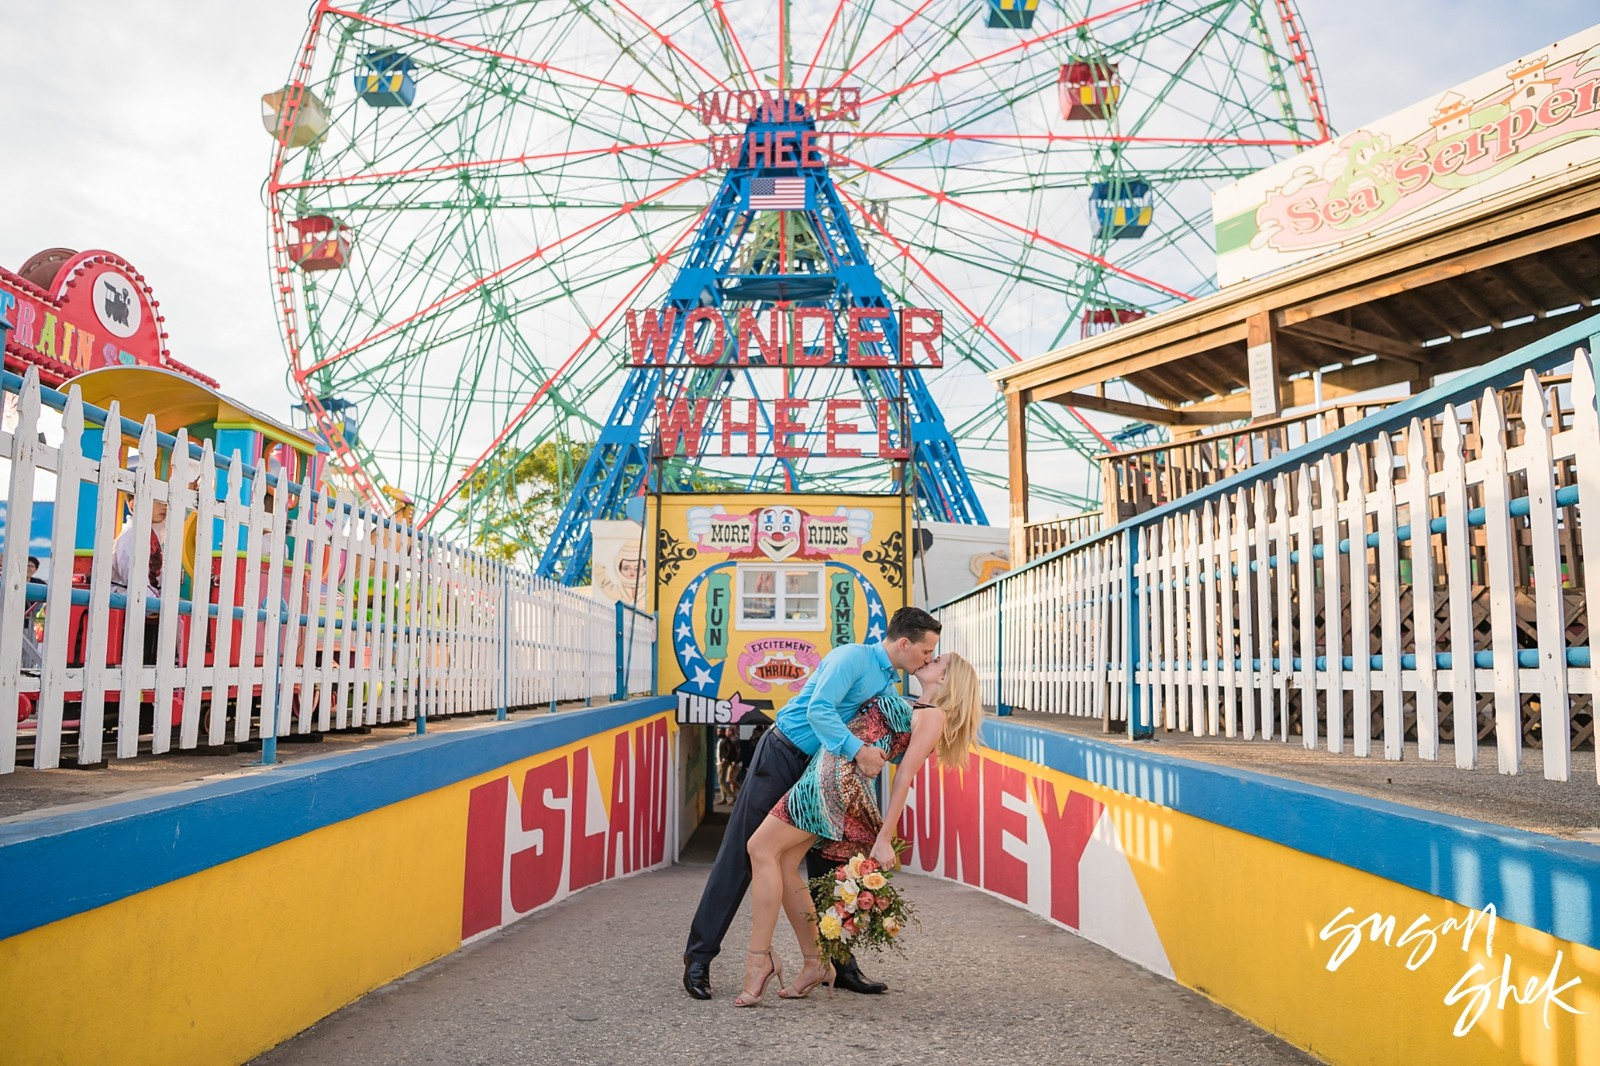 Coney Island Engagement, Engagement Shoot, NYC Engagement Photographer, Engagement Session, Engagement Photography, Engagement Photographer, NYC Wedding Photographer